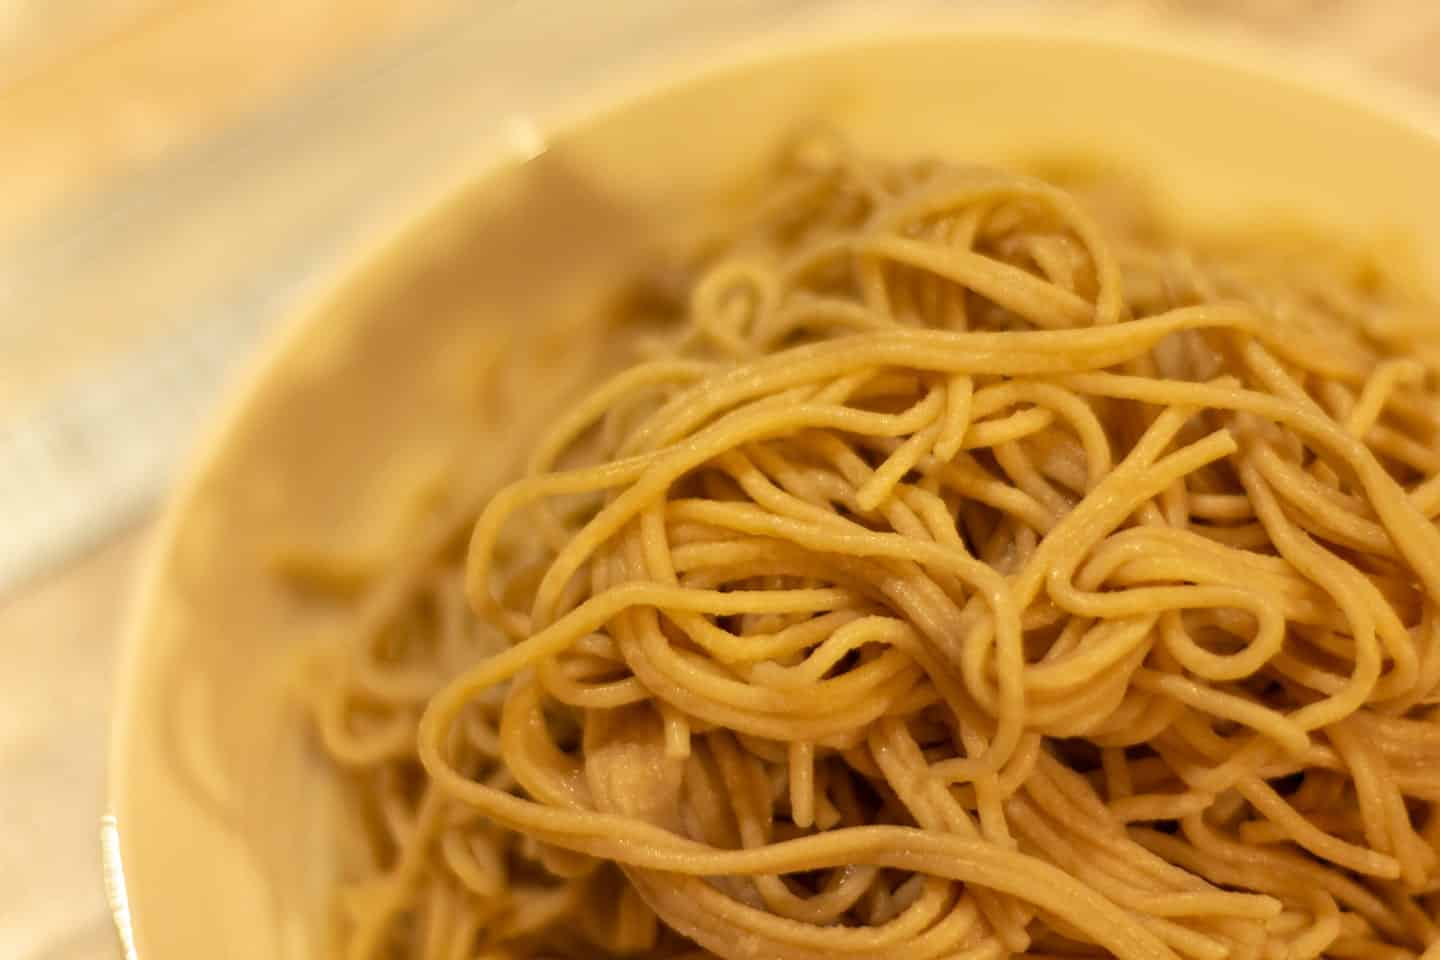 Brown Rice Quinoa Pasta reminds you at first of the Whole Wheat pasta. But the texture is quiet different.